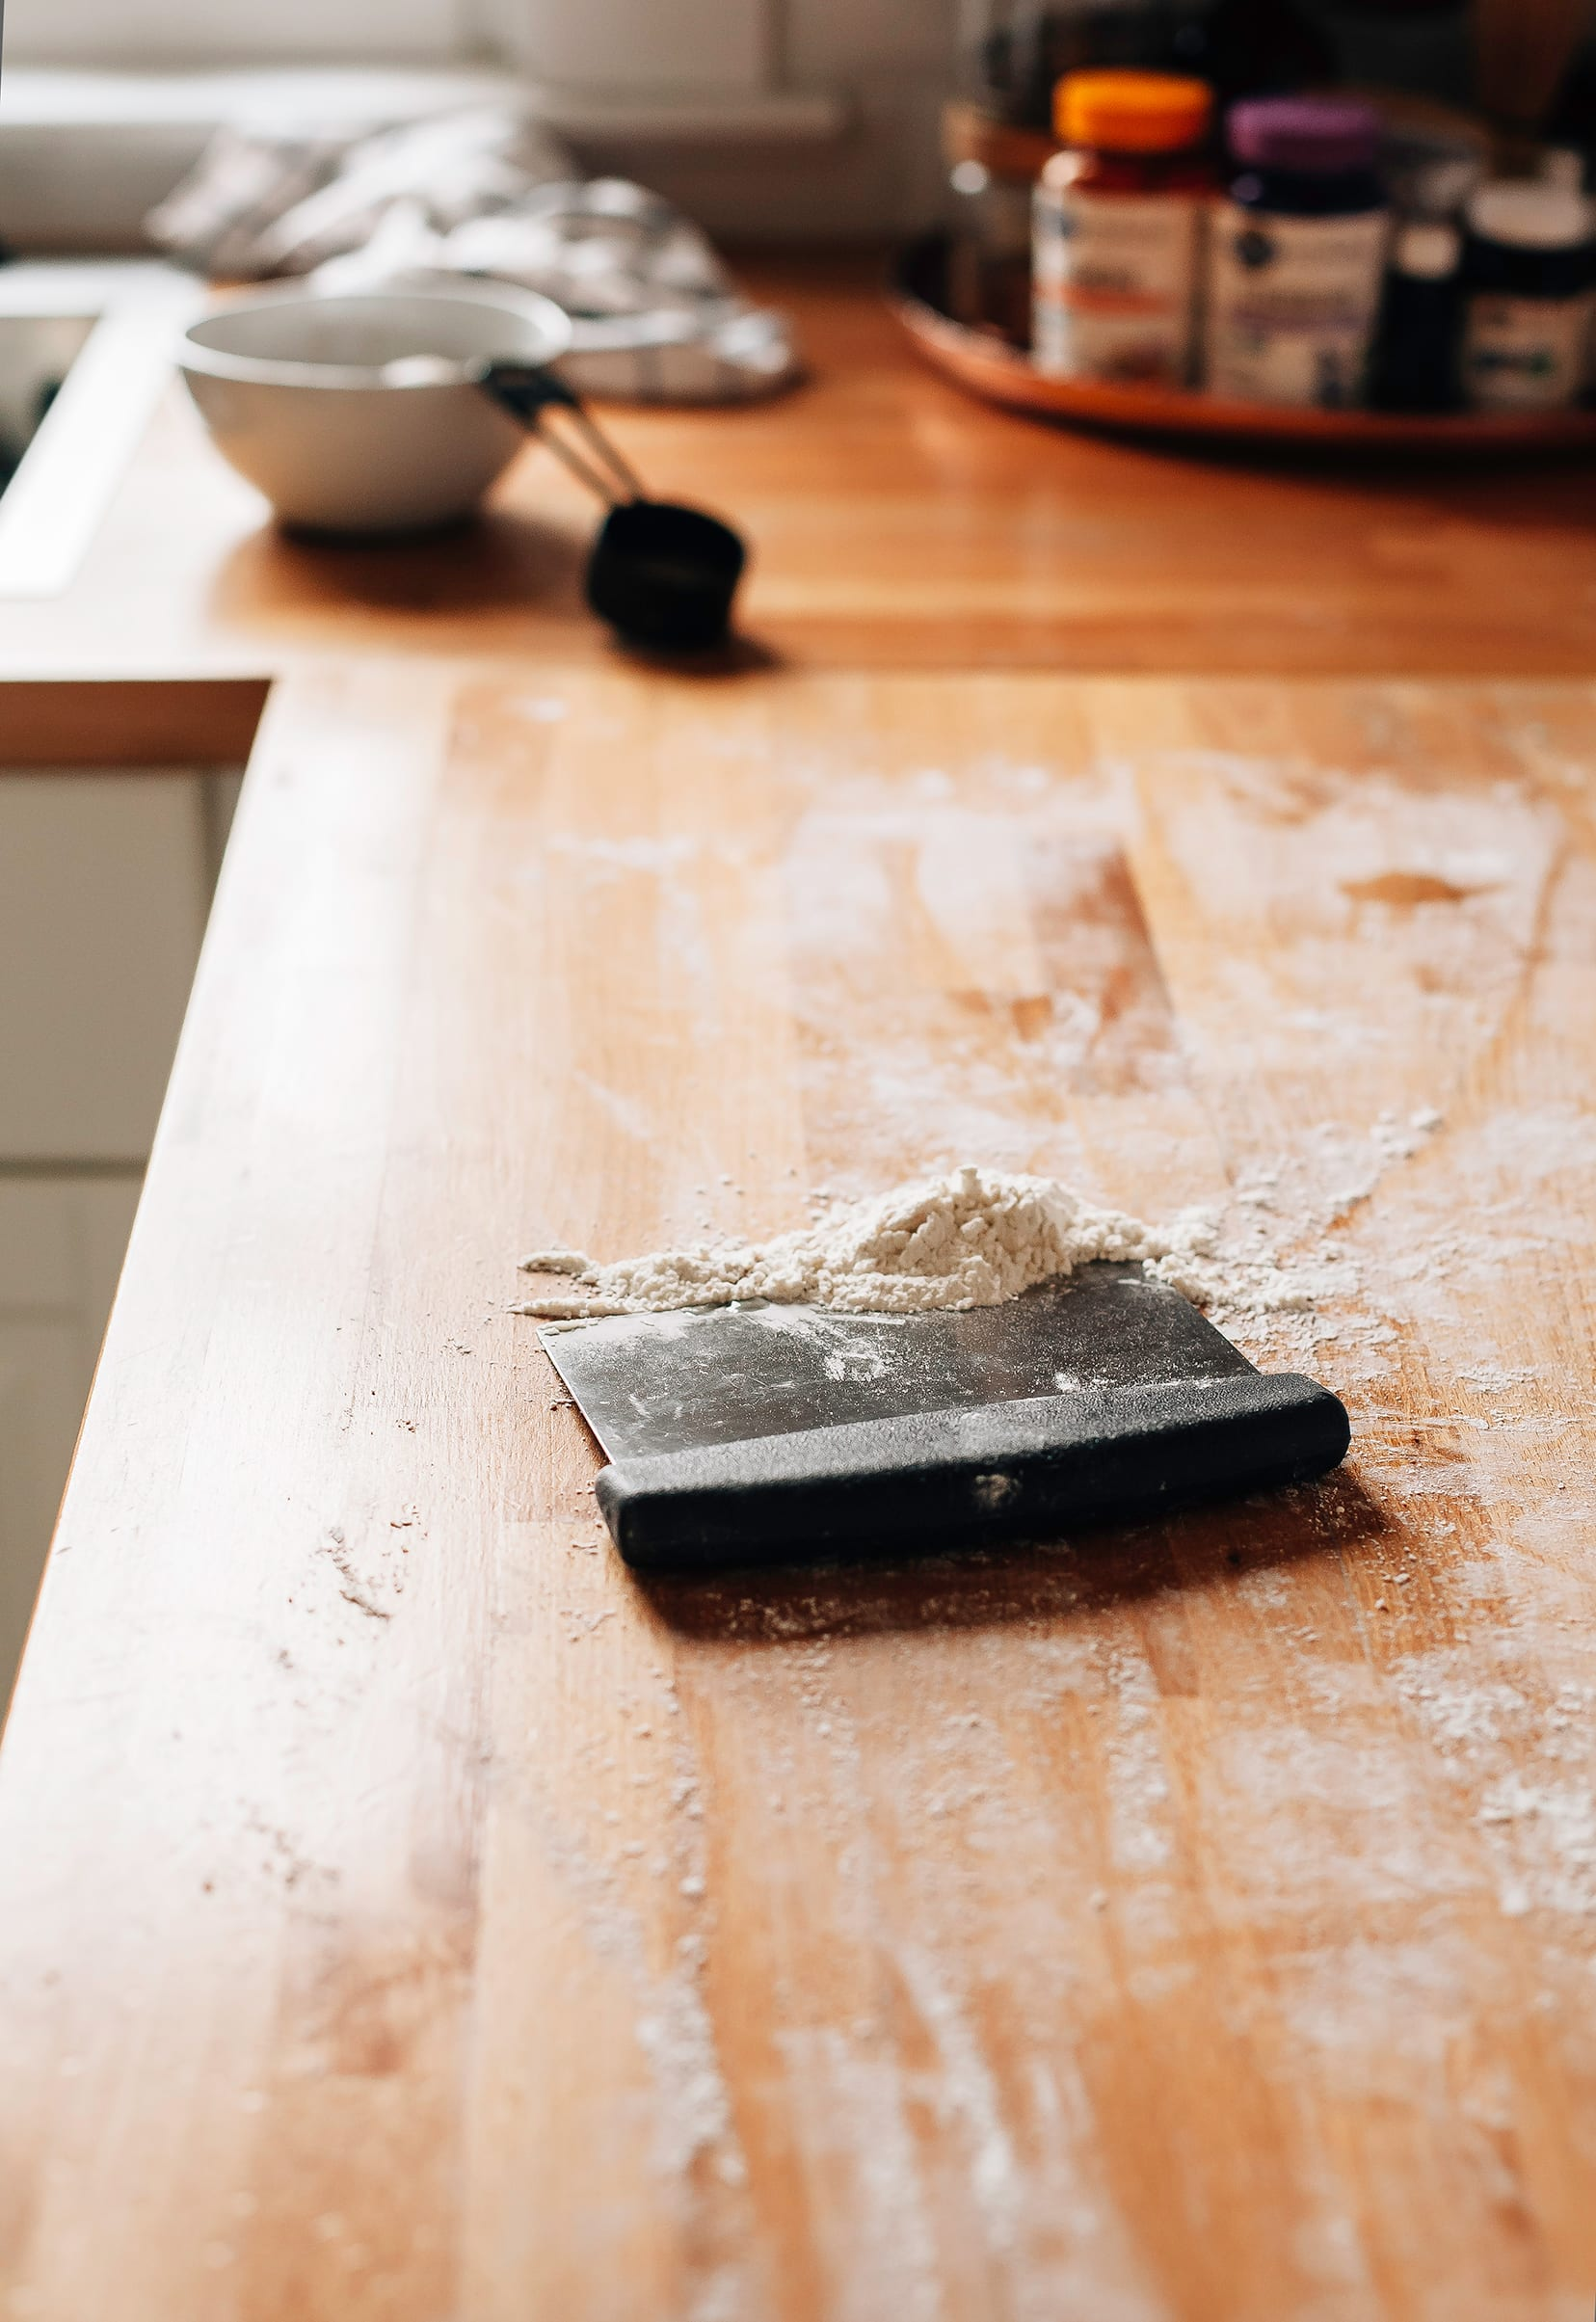 Image shows a bench scraper with gathered up dusting flour on top of a butcher block countertop.